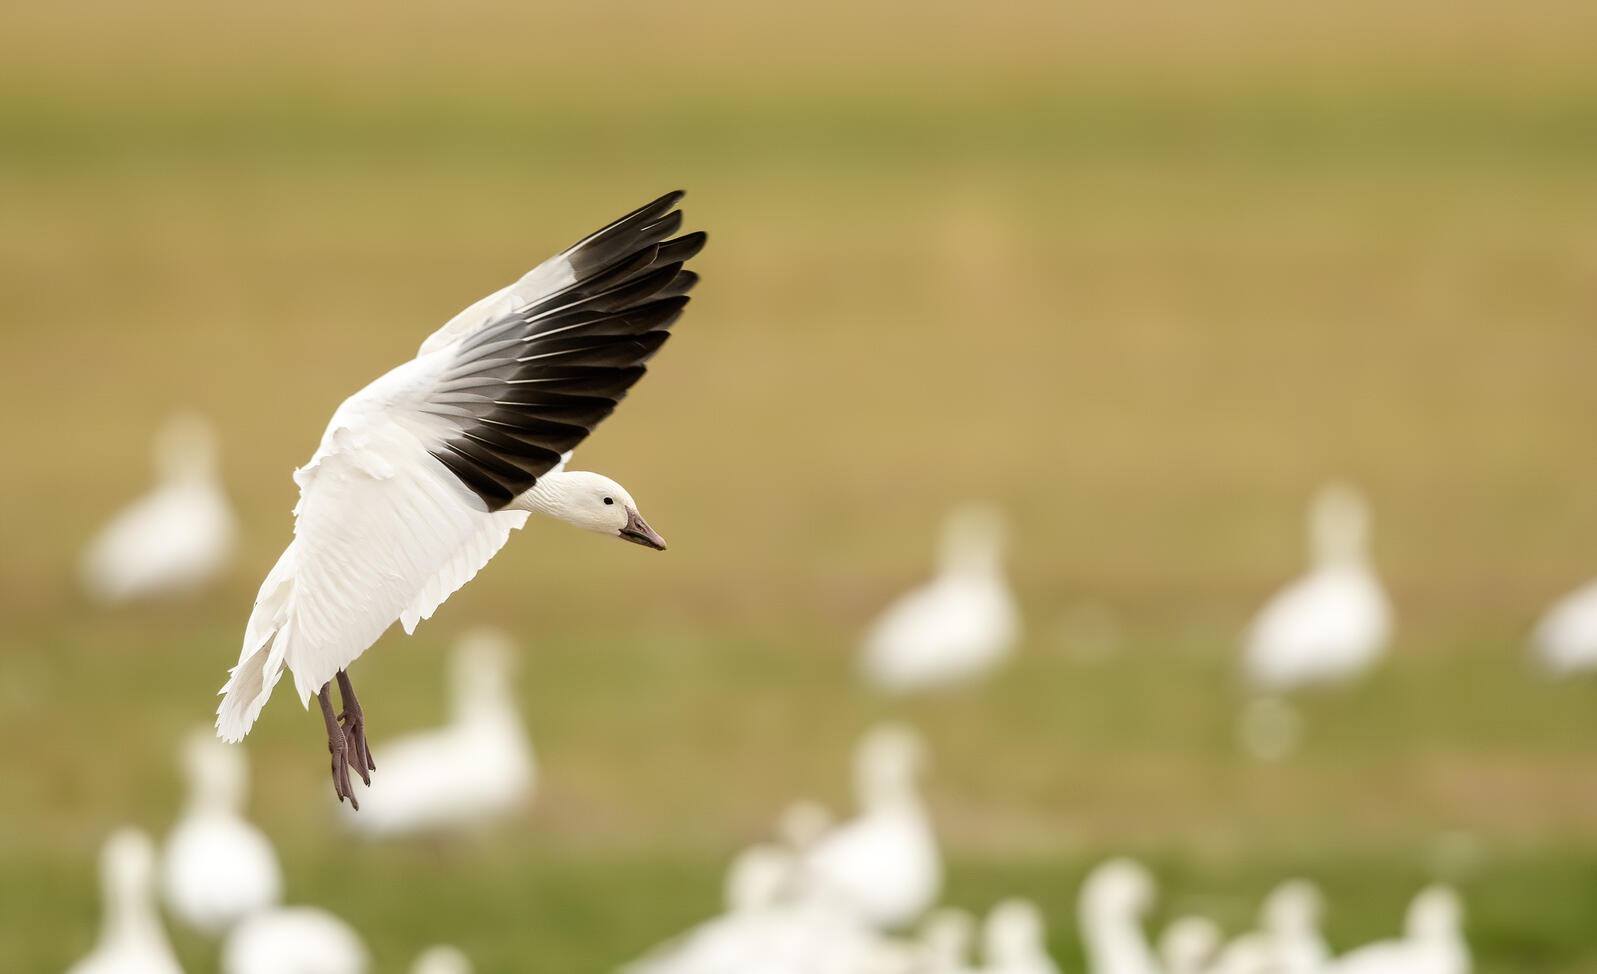 A white goose with upraised white wings with black wingtips is about to land on the ground. A Snow Goose comes in to land. Maruthi Naga Vamsi Krishna Prasad Kotti/Audubon Photography Awards